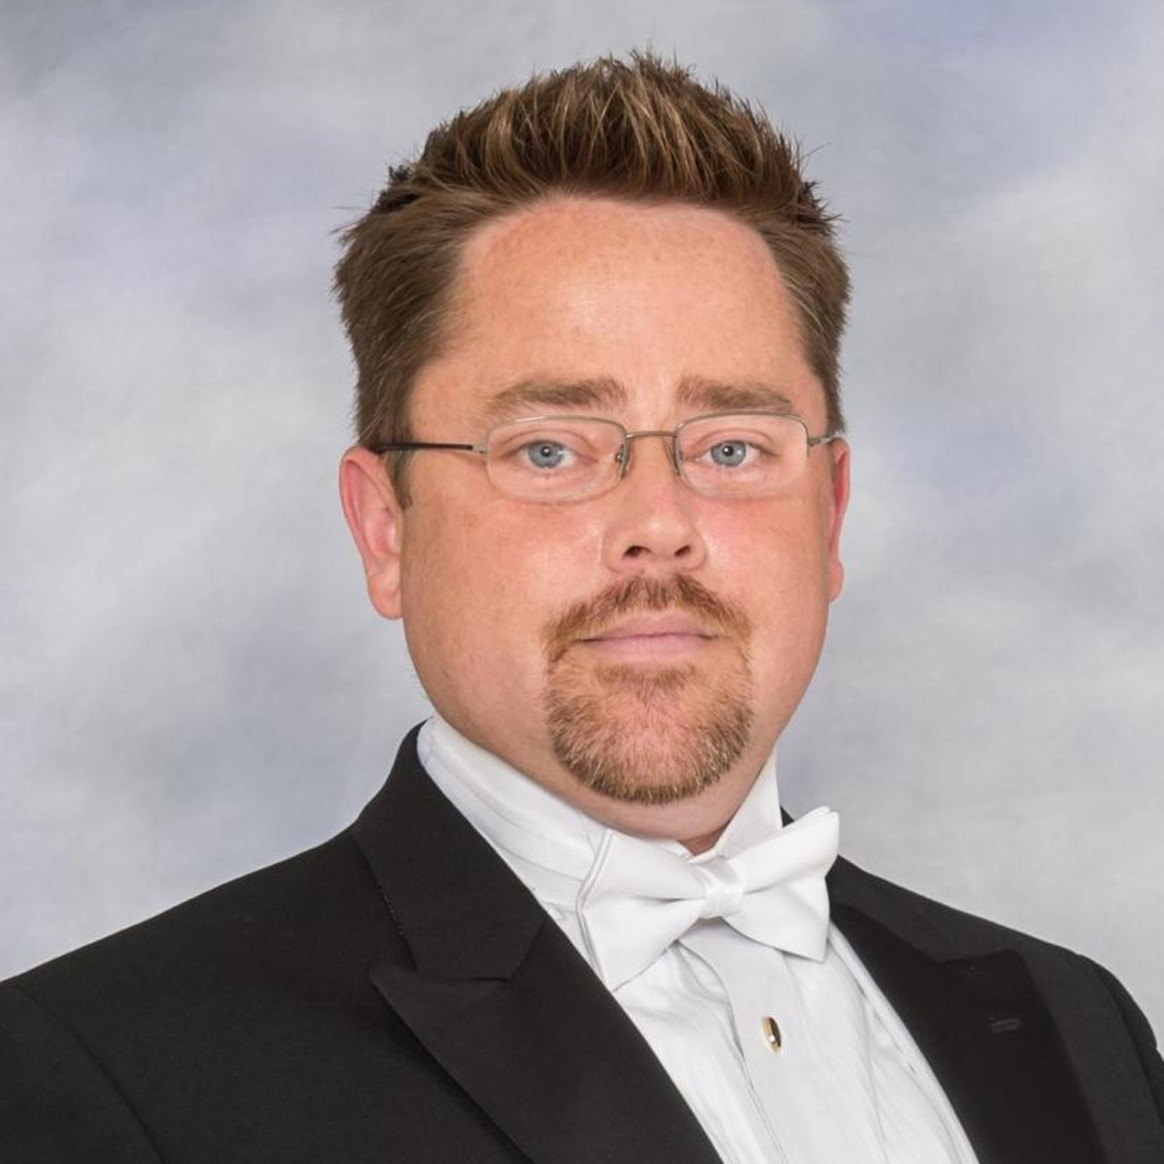 Headshot of Penn State Assistant Director of Athletic Bands Robert Hickey